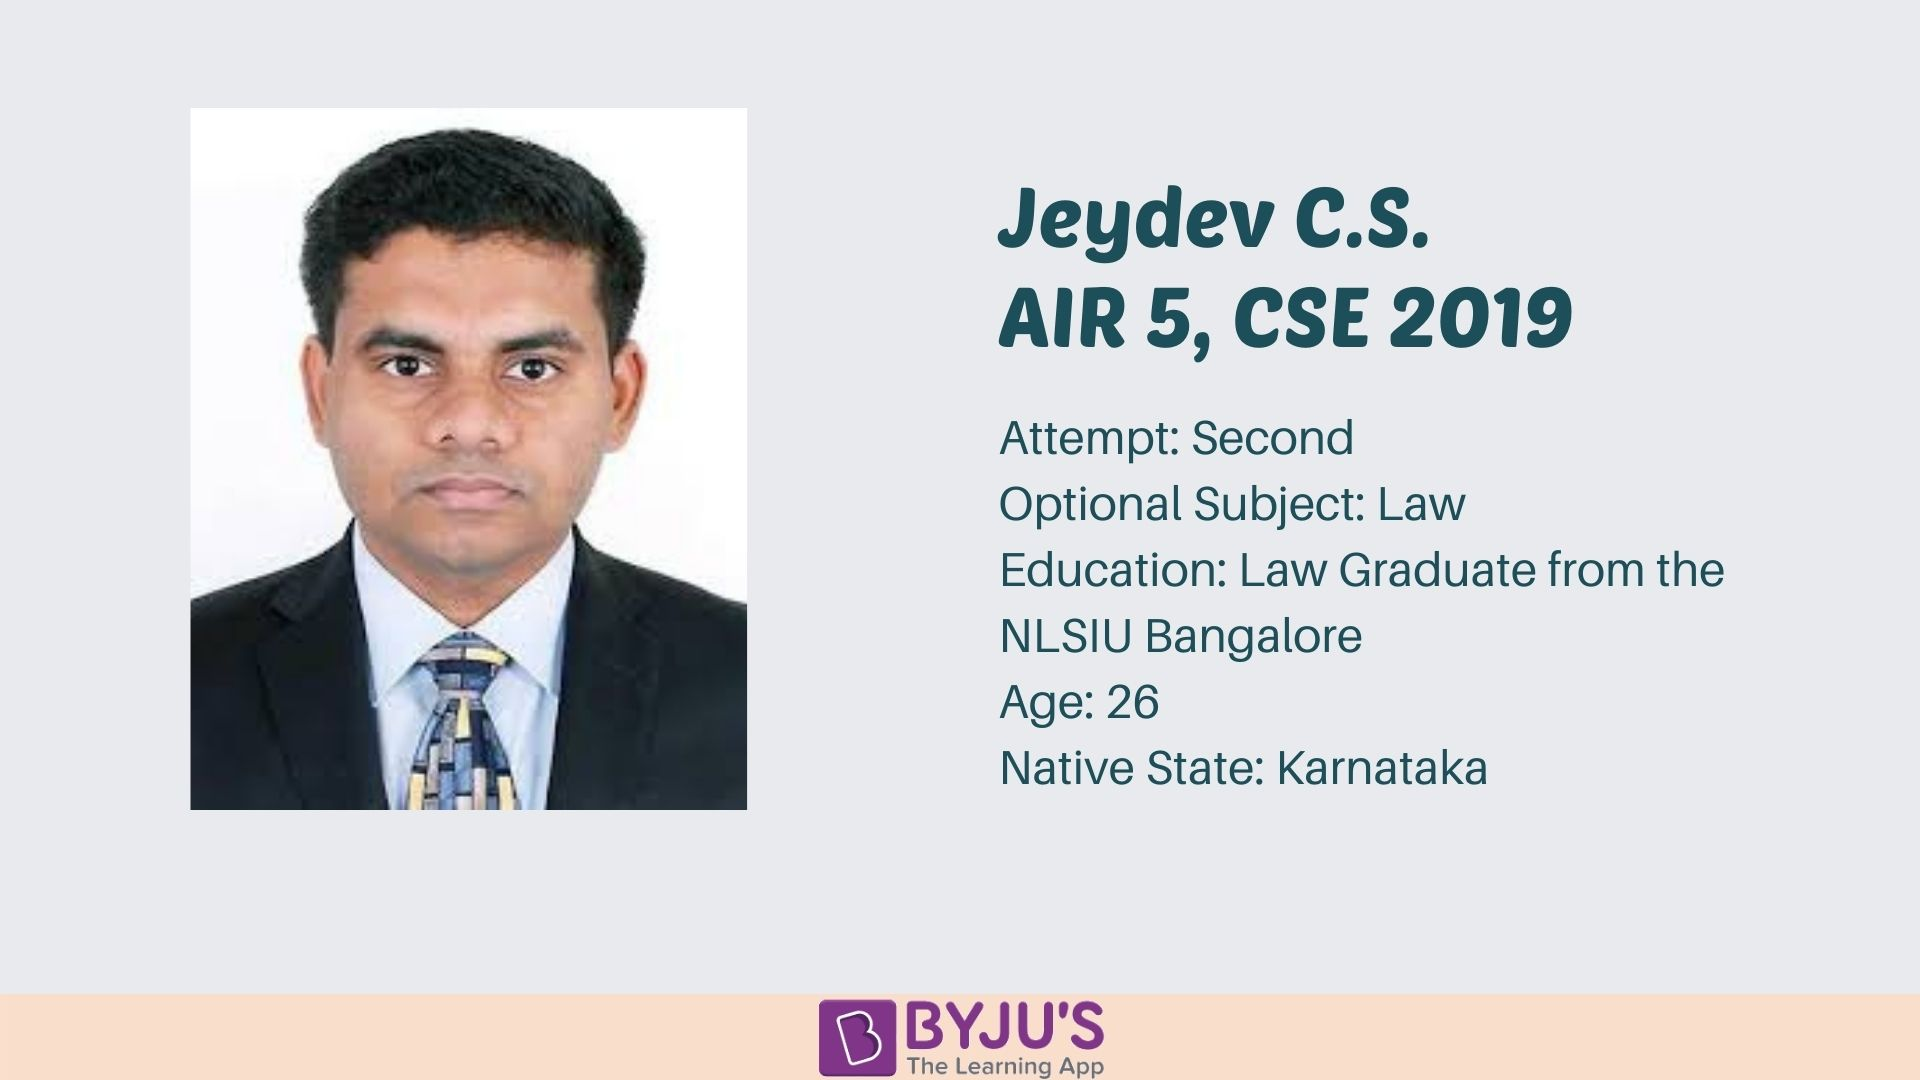 Jeydev C.S. Facts